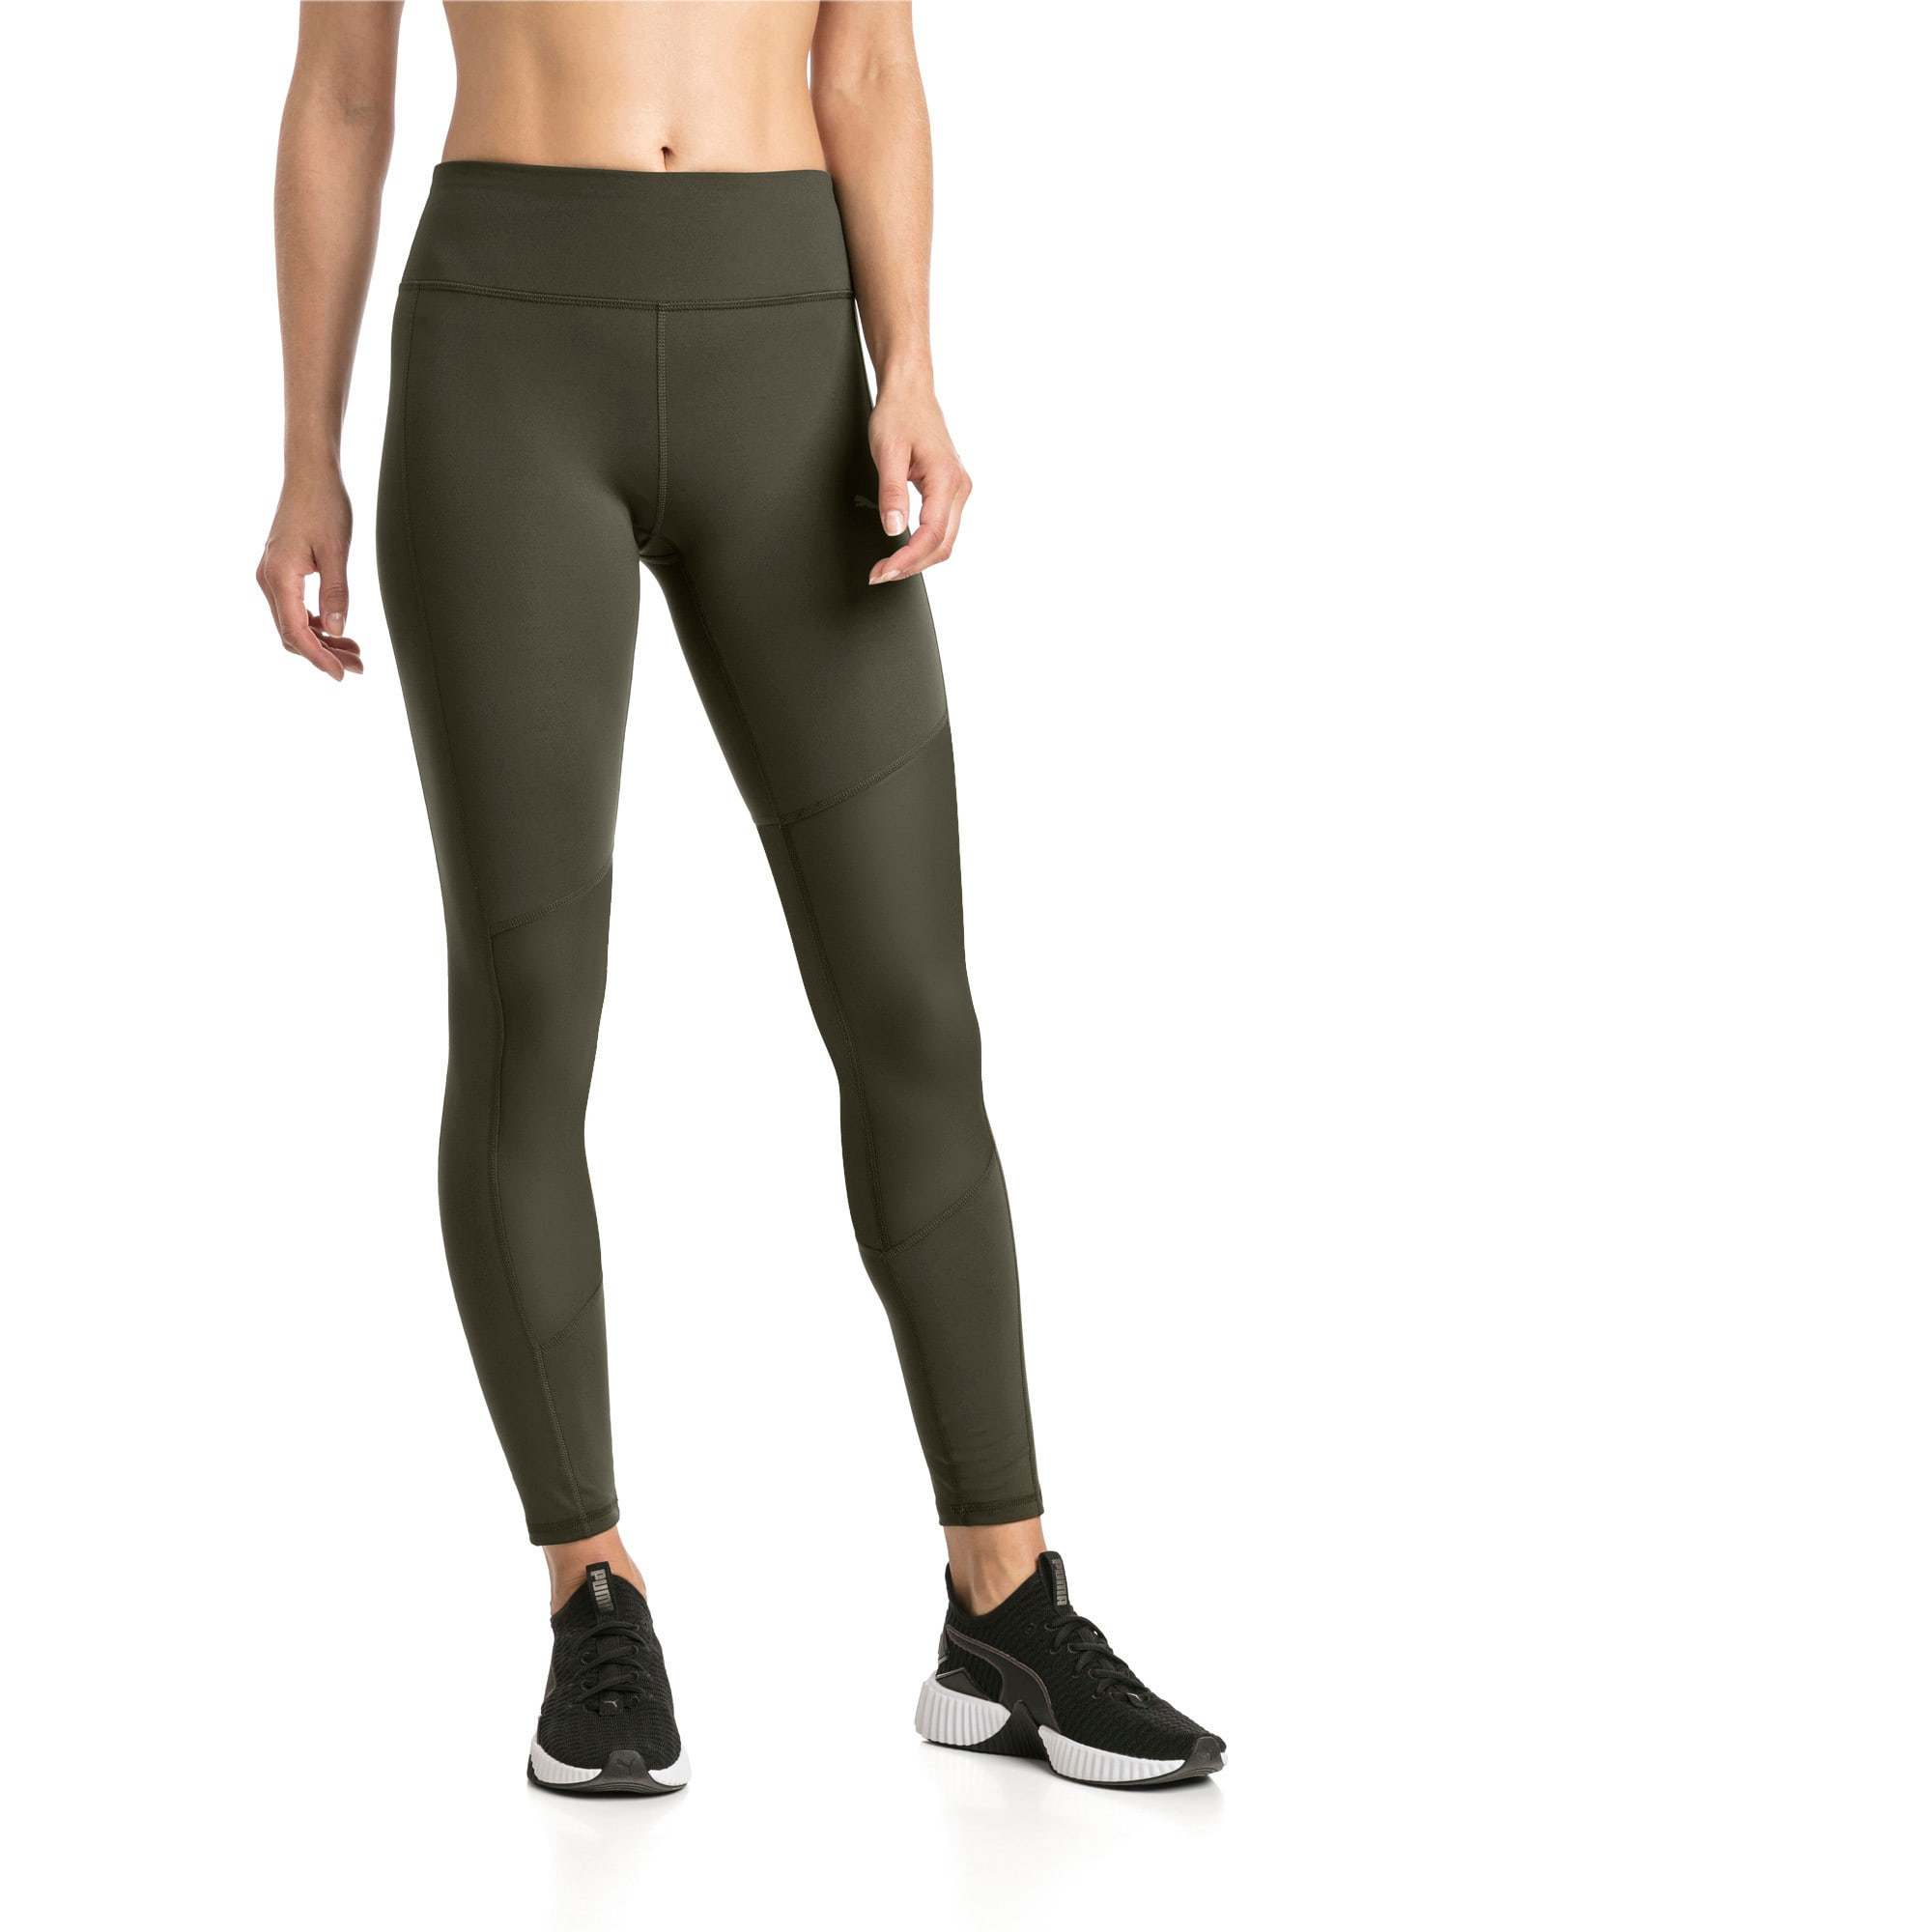 Thumbnail 1 of Always On Solid Women's 7/8 Training Leggings, Forest Night, medium-IND